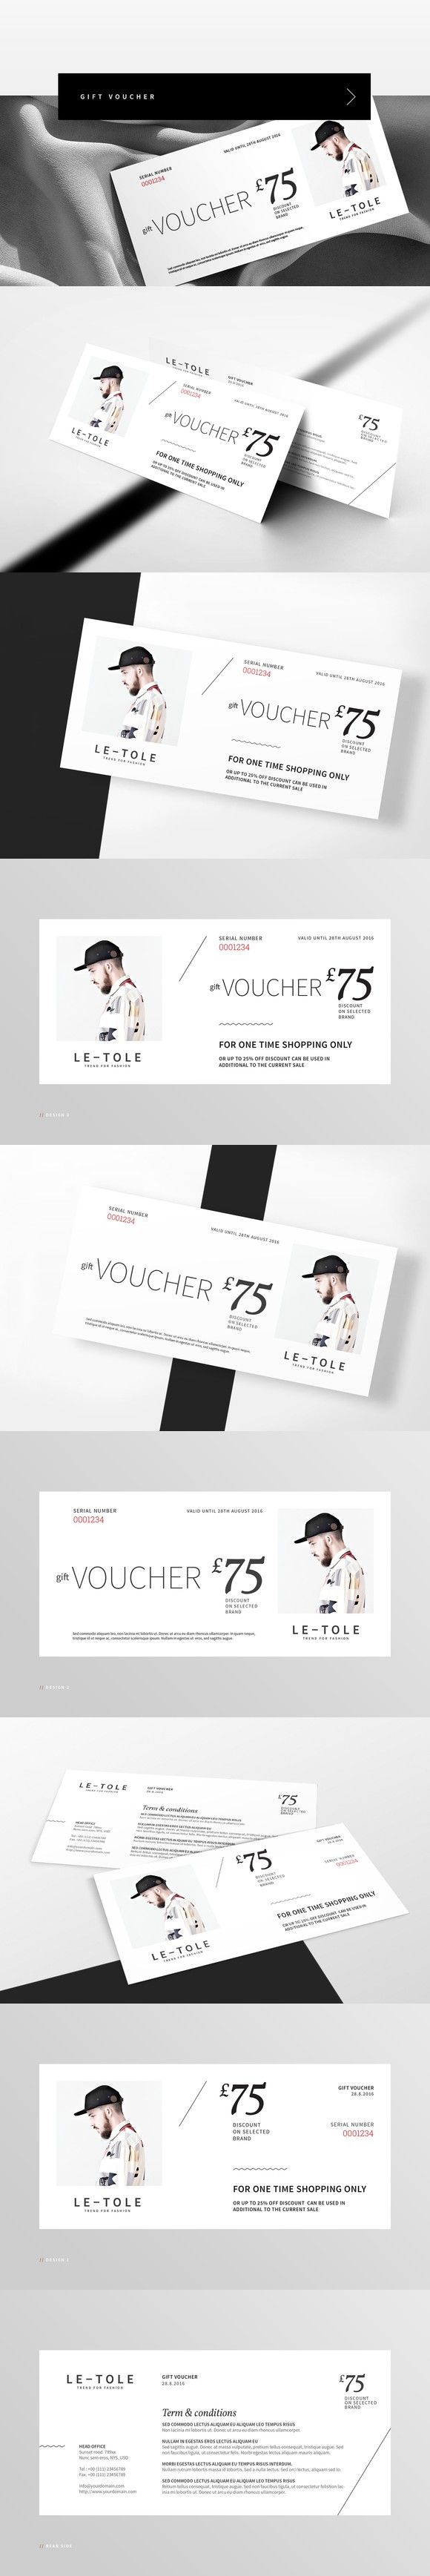 10 best Coupon Design images on Pinterest | Editorial design, Coupon ...